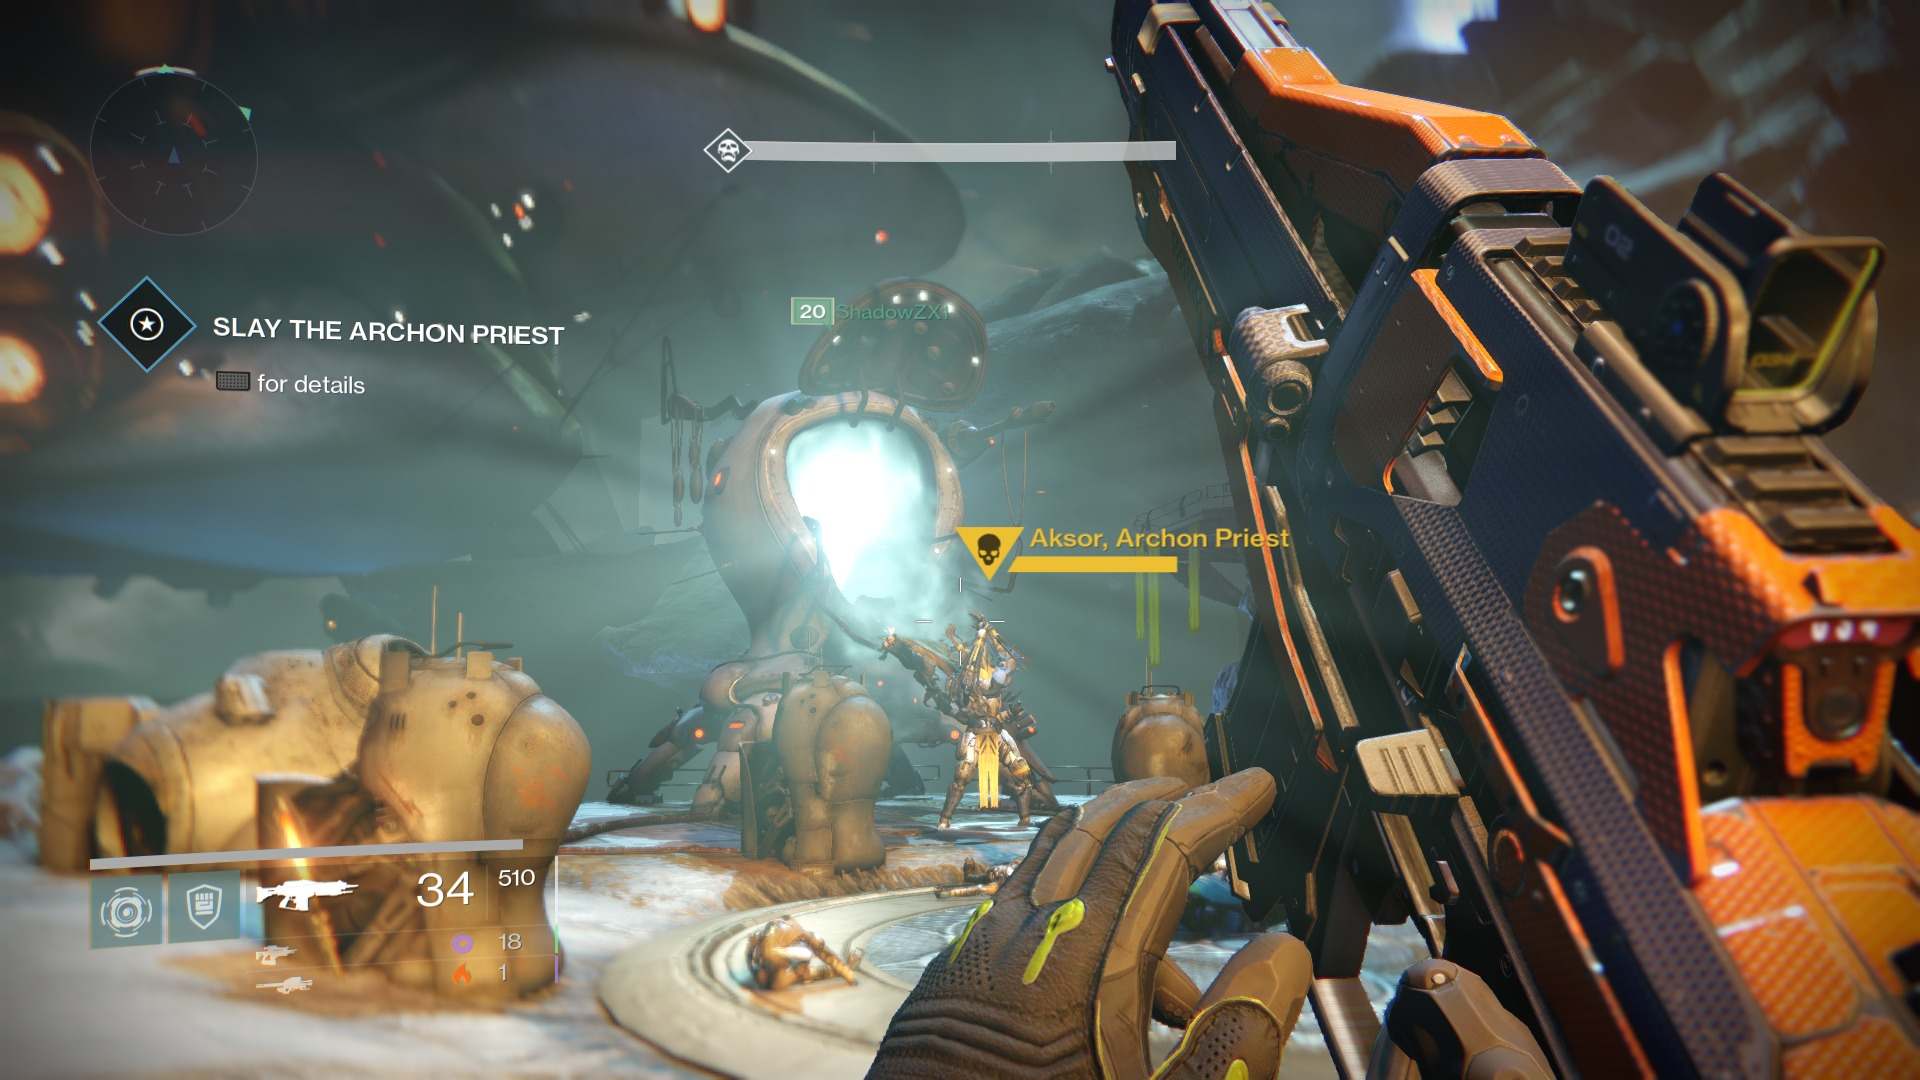 Missions and strikes are punctuated with tough boss battles that